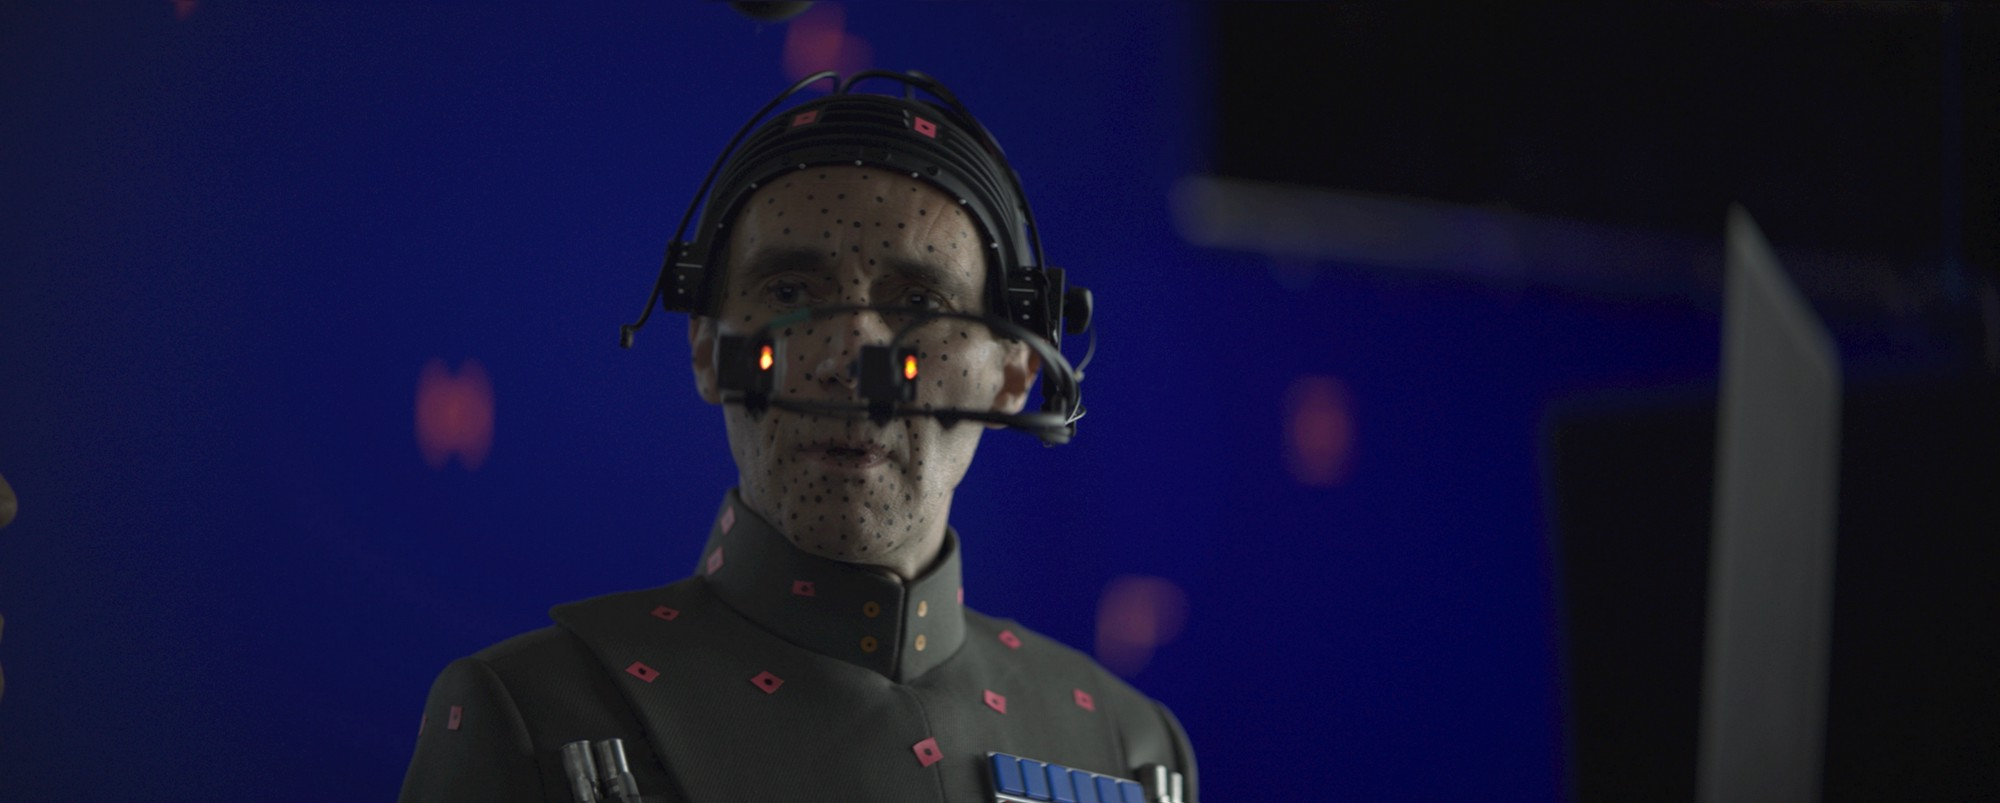 Hollywood With Rogue One Resurrects Peter Cushing. Would It Be Right To Create A Human Digital Replica Of A Deceased?